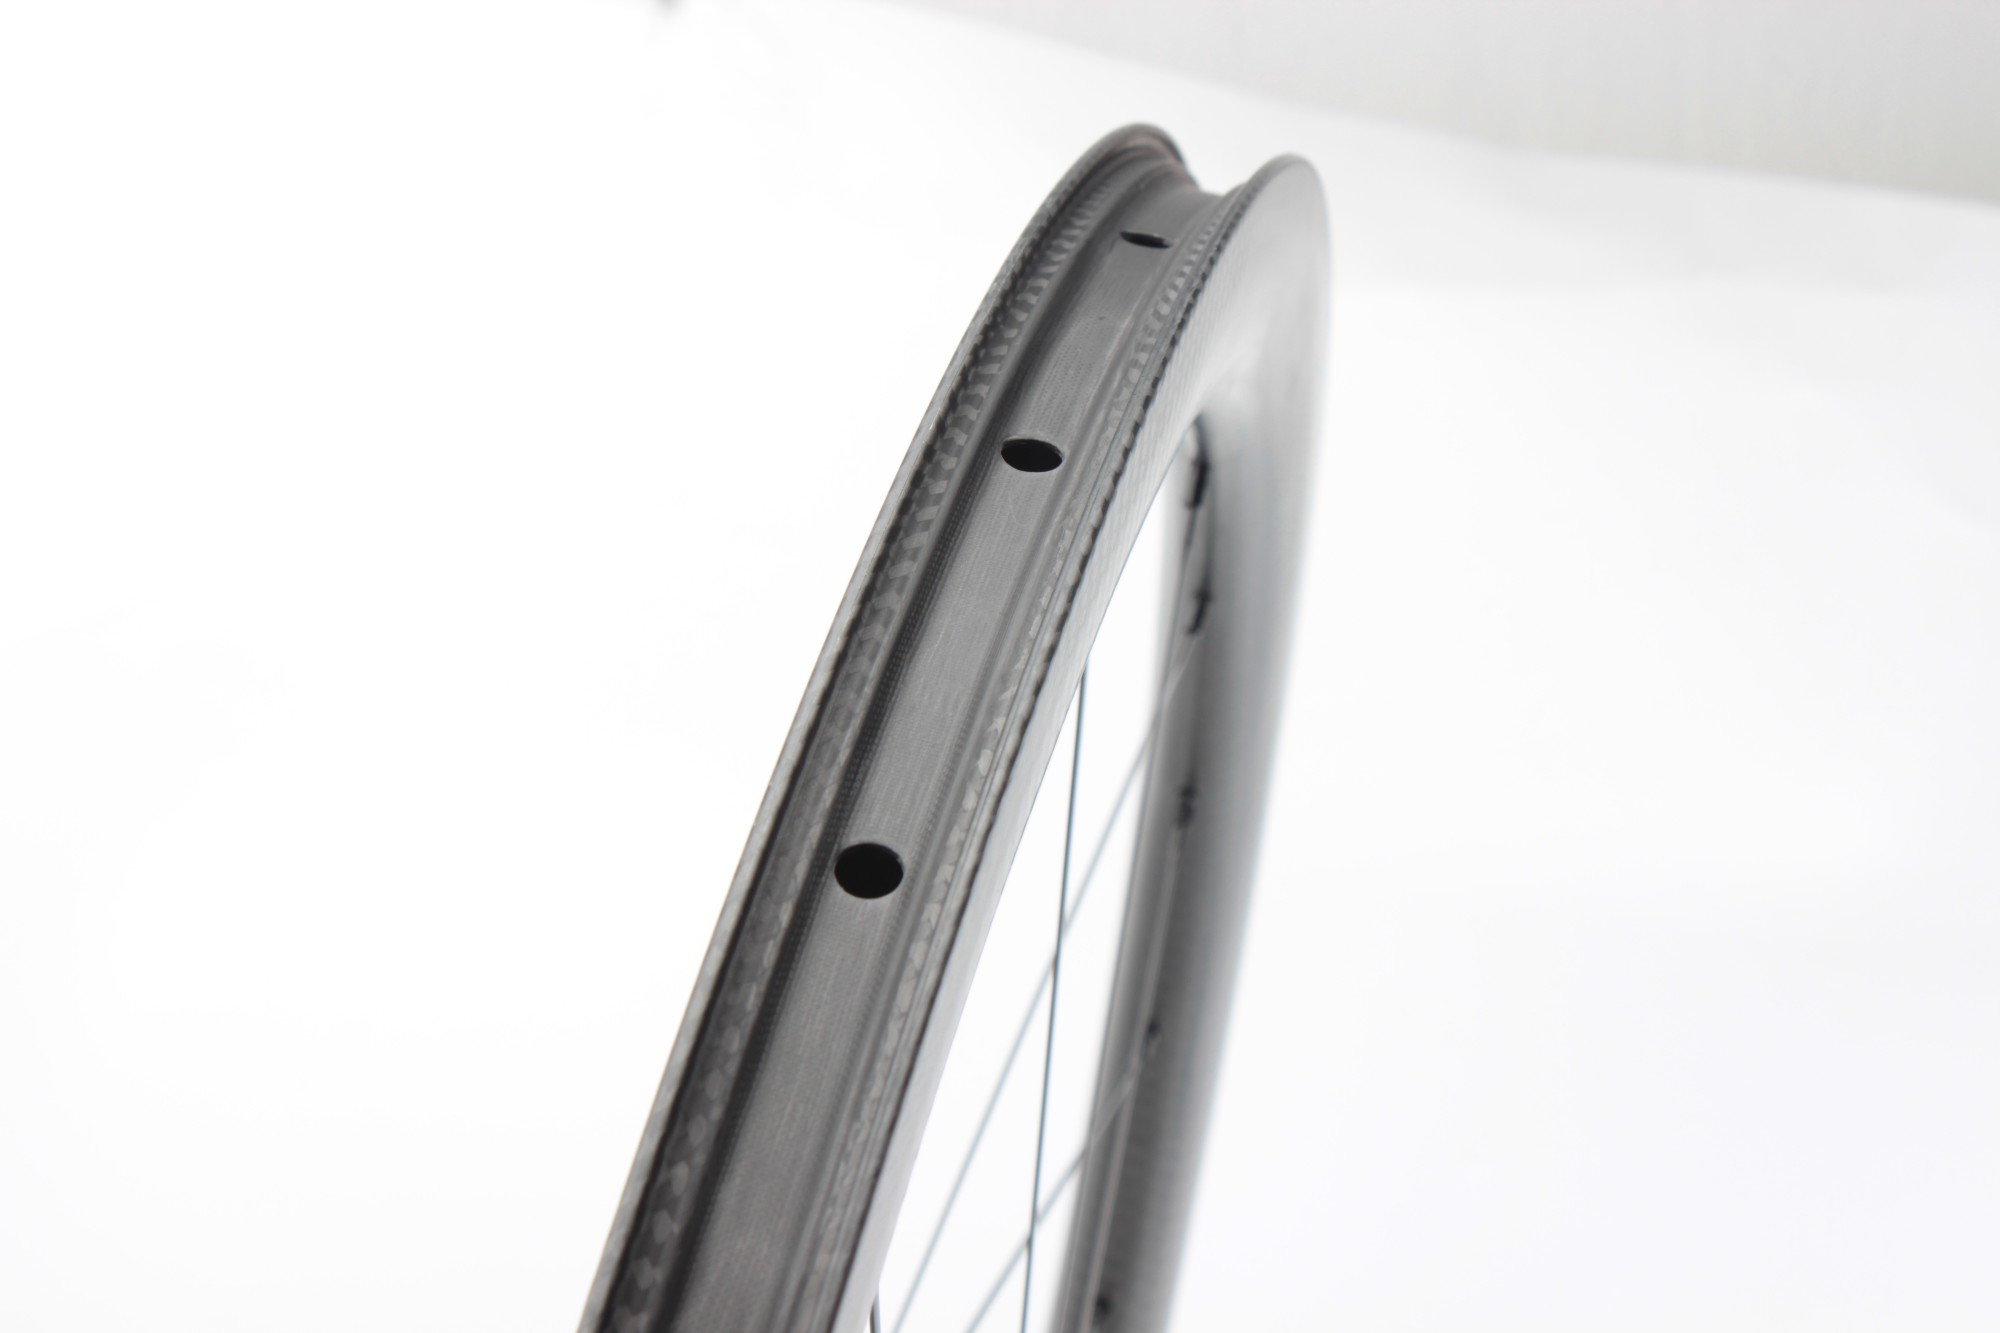 Chinese carbon wheels 58mm deep 28mm wide tubeless for gravel riding Manufacturers, Chinese carbon wheels 58mm deep 28mm wide tubeless for gravel riding Factory, Supply Chinese carbon wheels 58mm deep 28mm wide tubeless for gravel riding